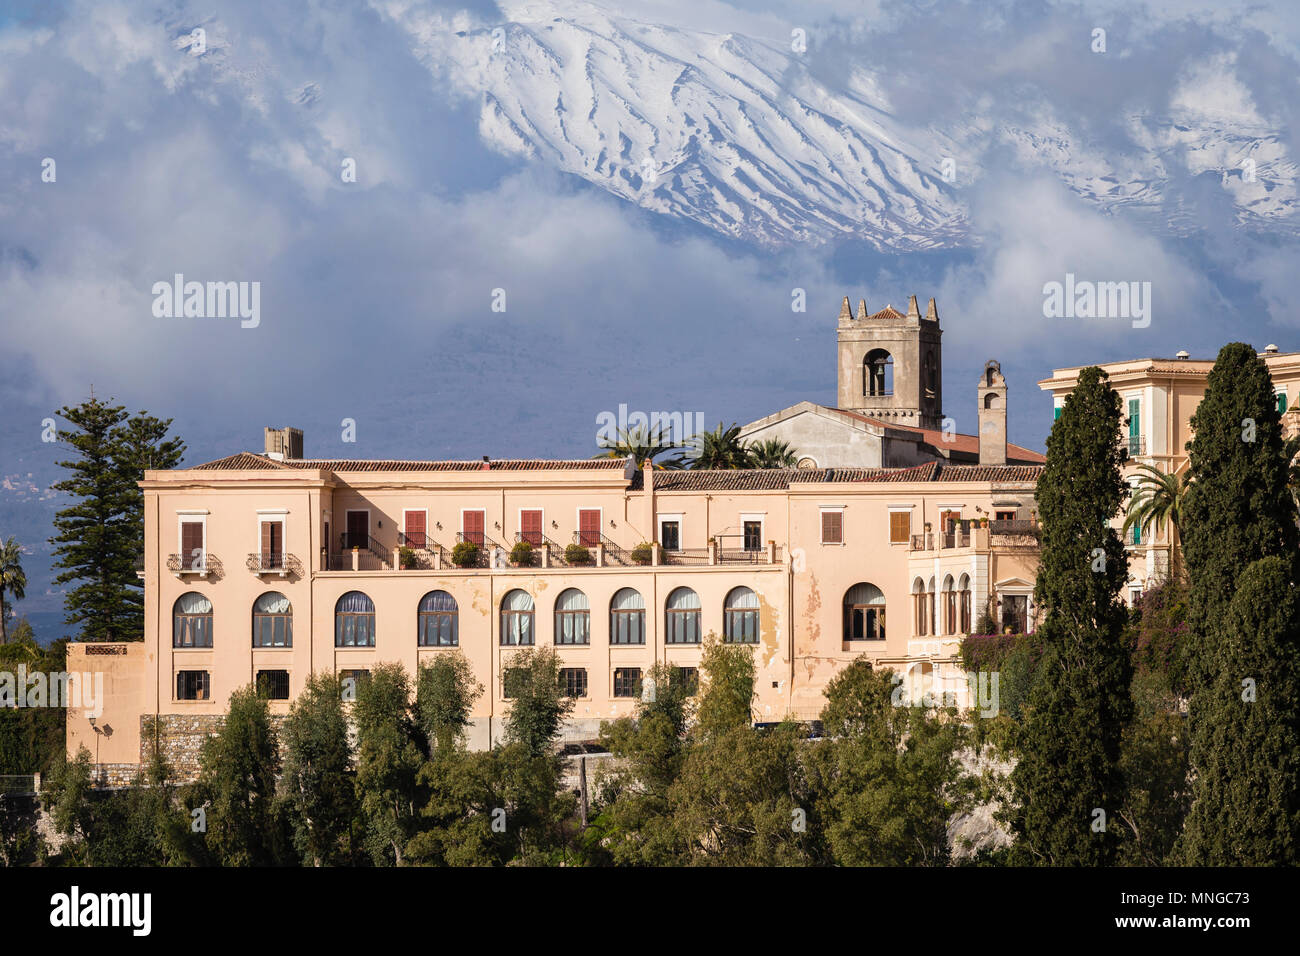 San Domenico Palace Hotel in Taormina with the slopes of Mount Etna, Sicily. - Stock Image